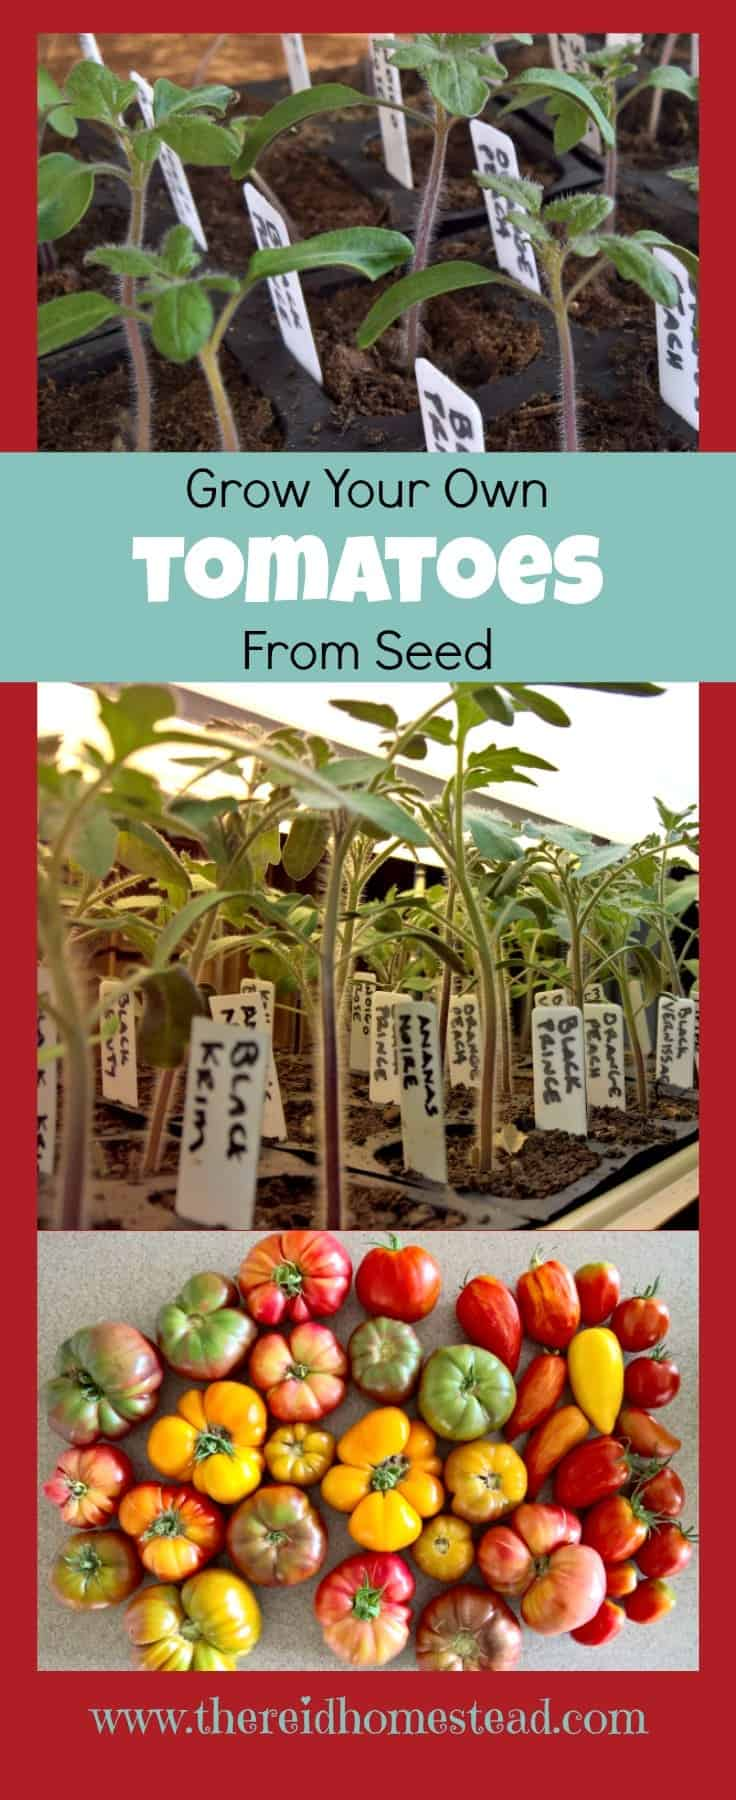 Want to grow your own tomatoes from seed? This allows you to try growing new and different varieties from the norm! Follow along as I share how to grow tomatoes from seed, as part of my Seed Starting 101 Series. The Reid Homestead